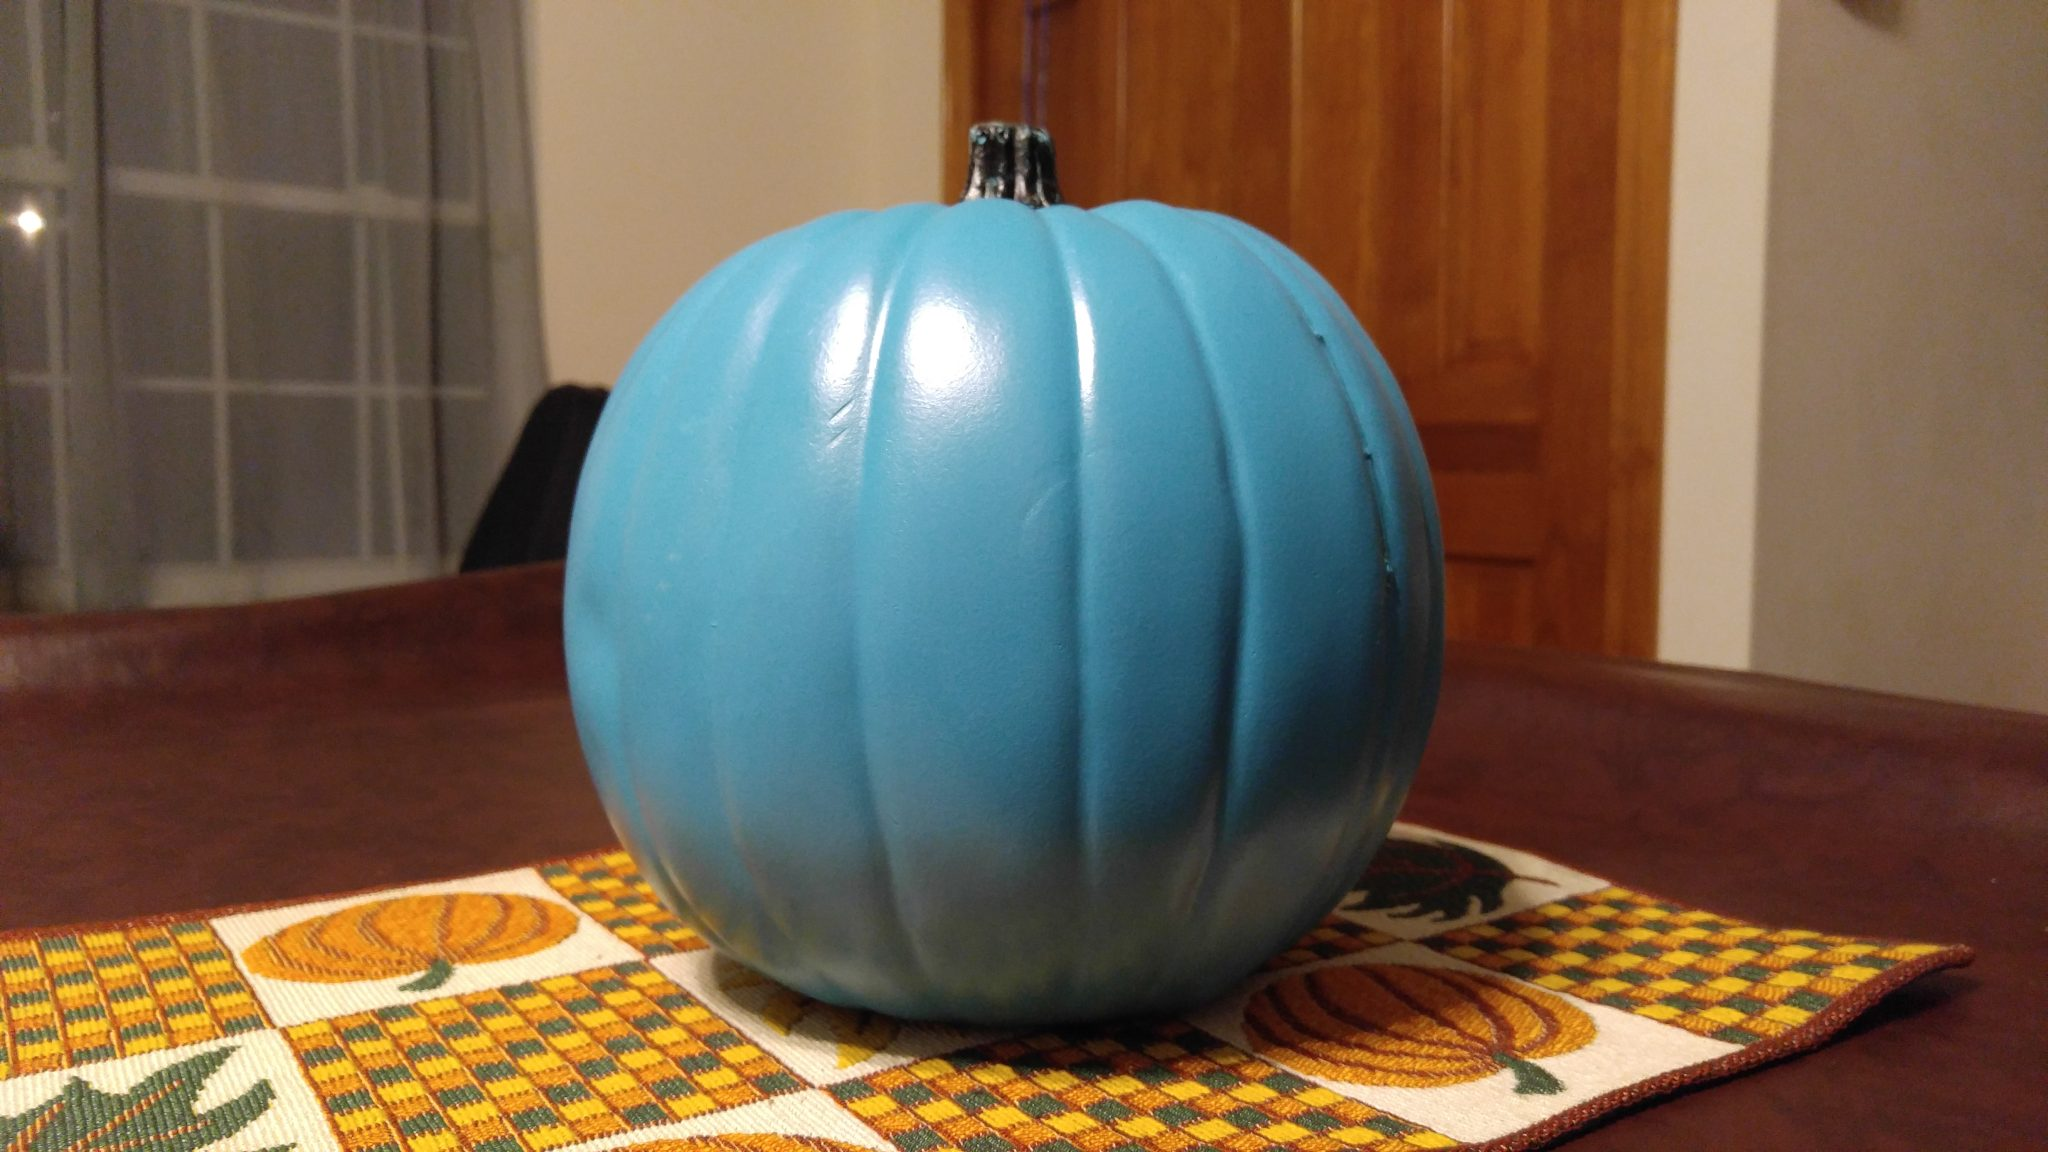 What's That Teal Pumpkin For?